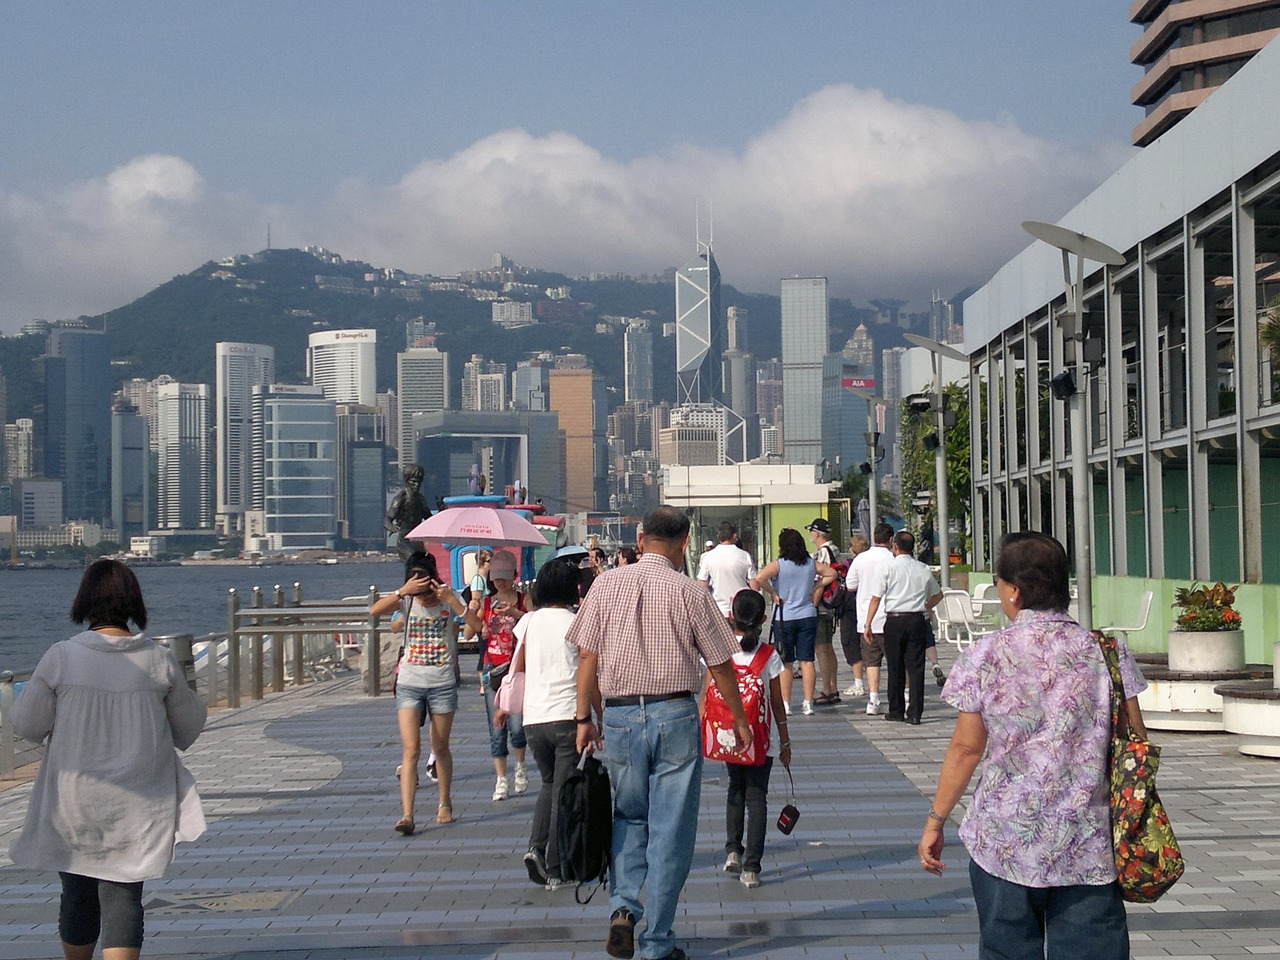 Hong Kong's wealth gap has widened to a historic high. (Image via pixabay / CC0 1.0)